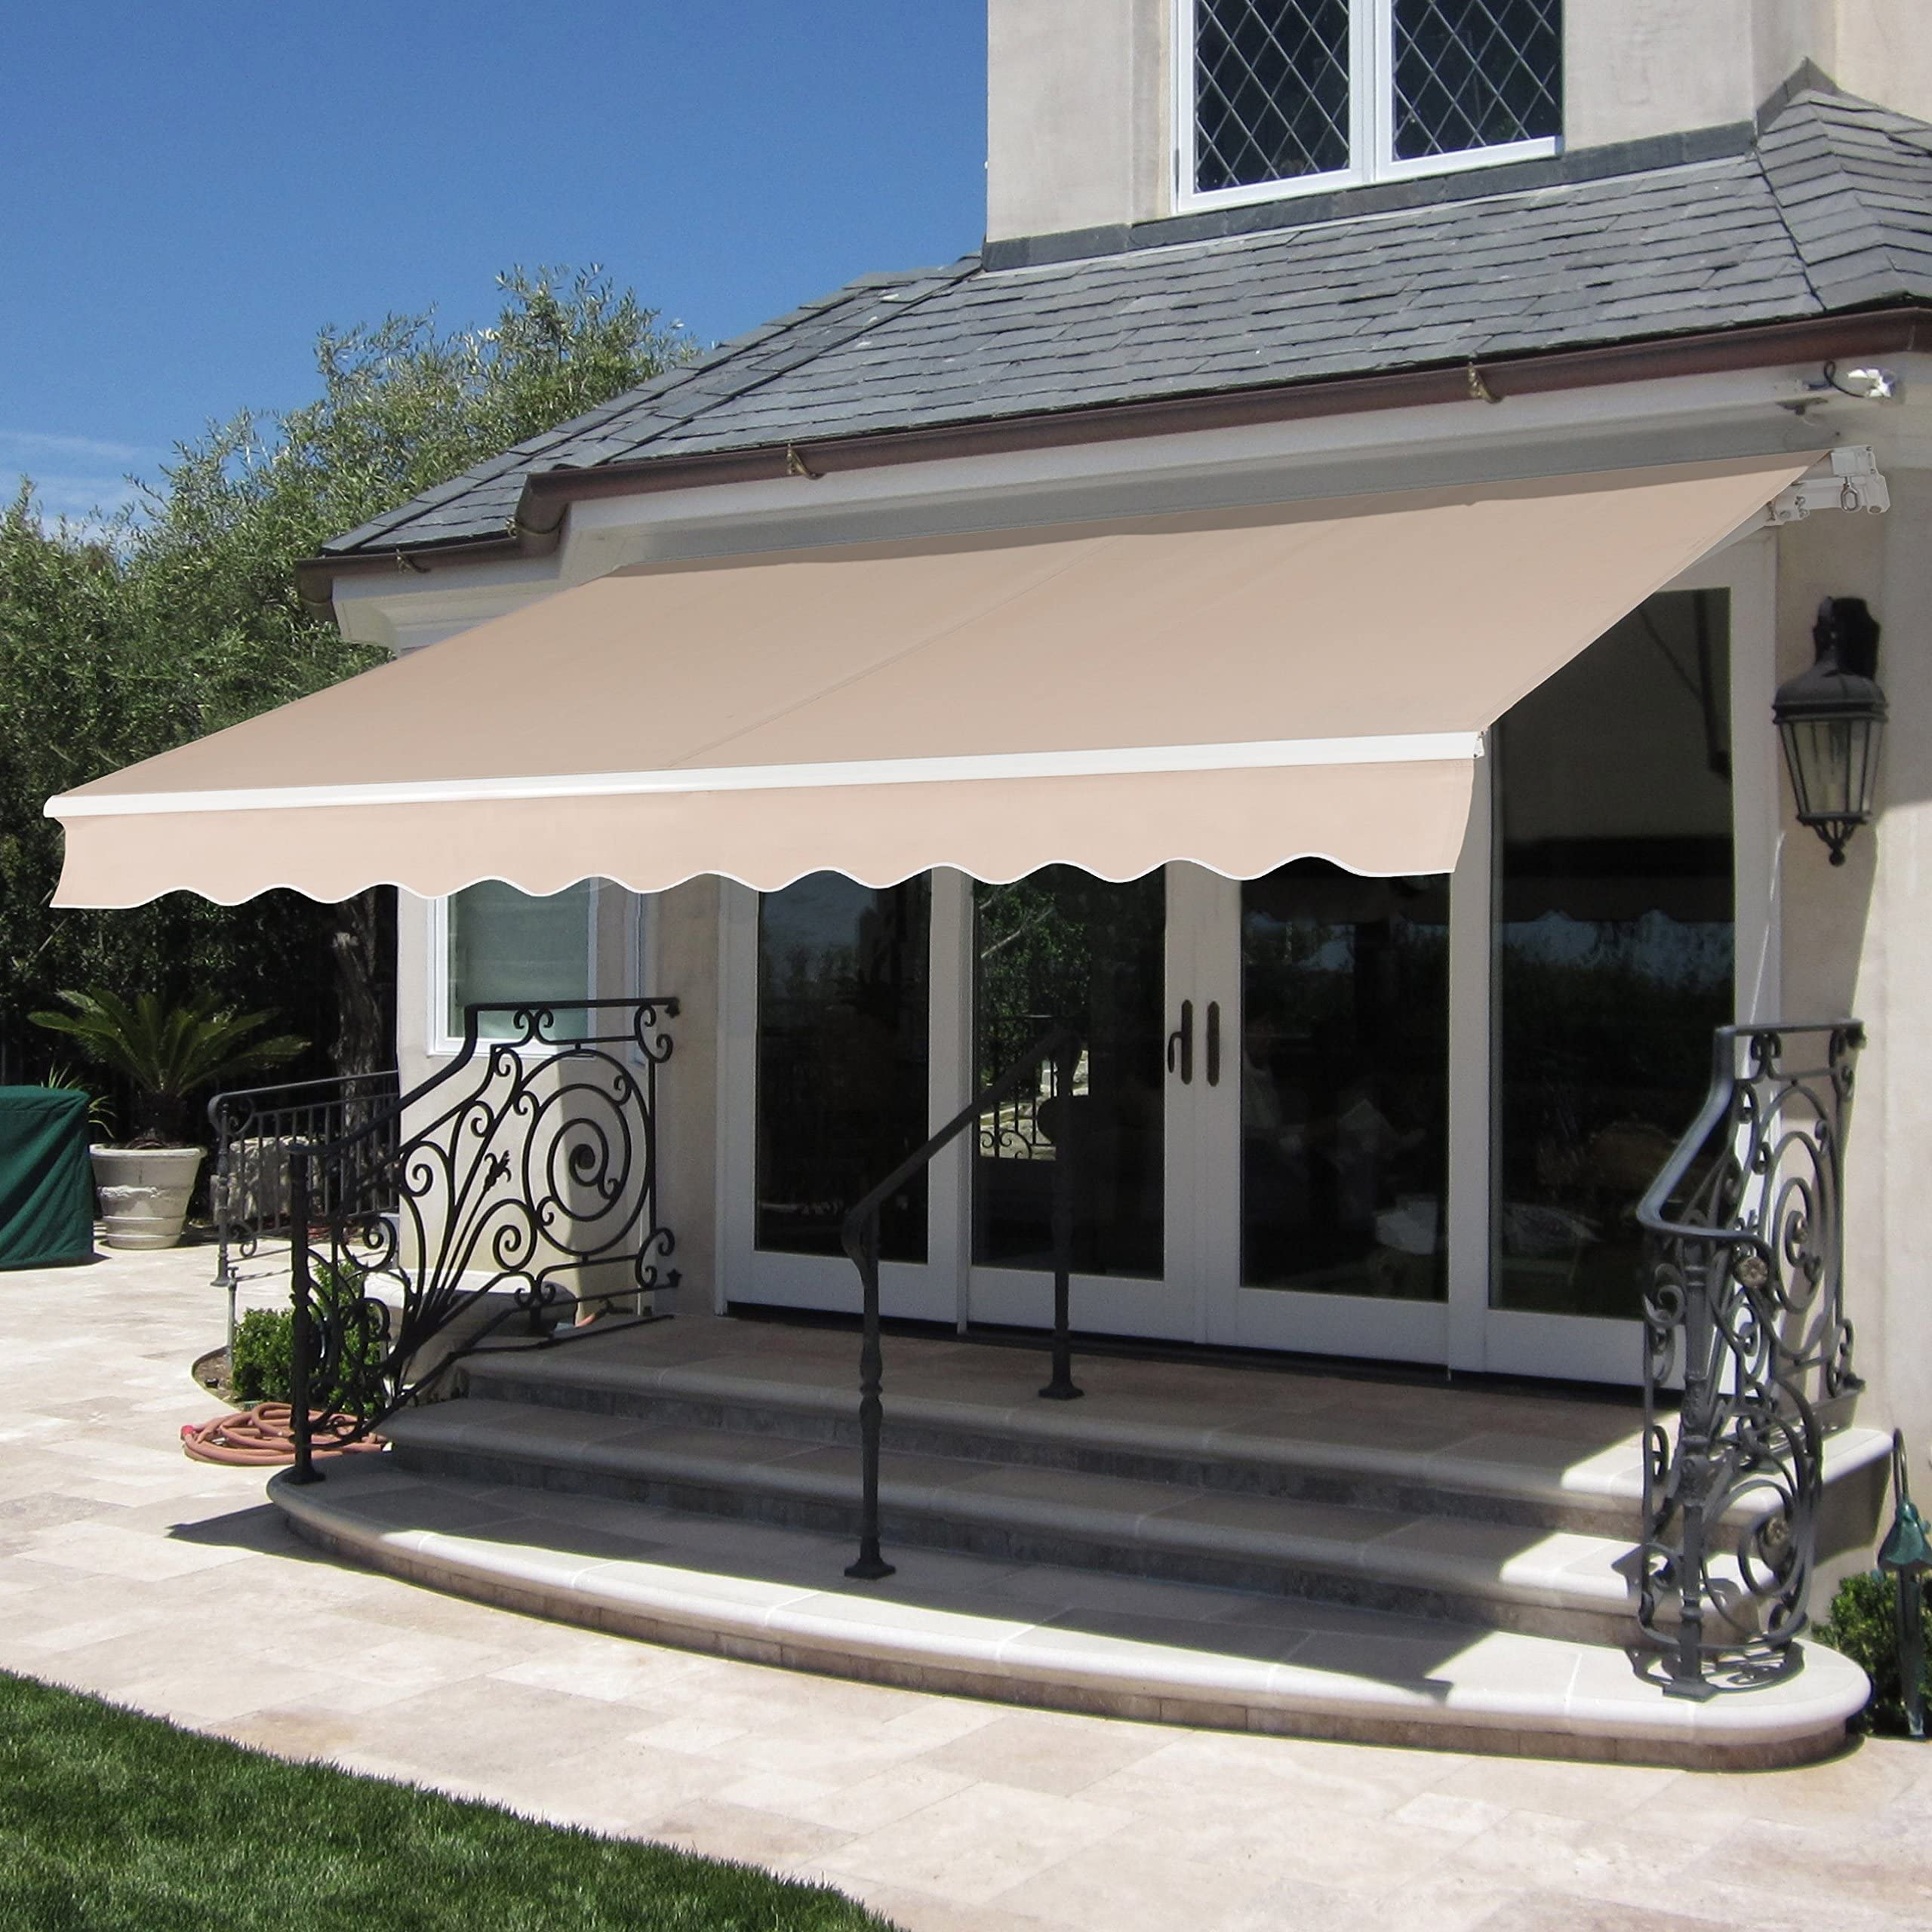 Best Choice Products Patio Manual Patio 8.2u0027x6.5u0027 Retractable Deck Awning Sunshade  sc 1 st  Amazon.com & Patio Awnings | Amazon.com